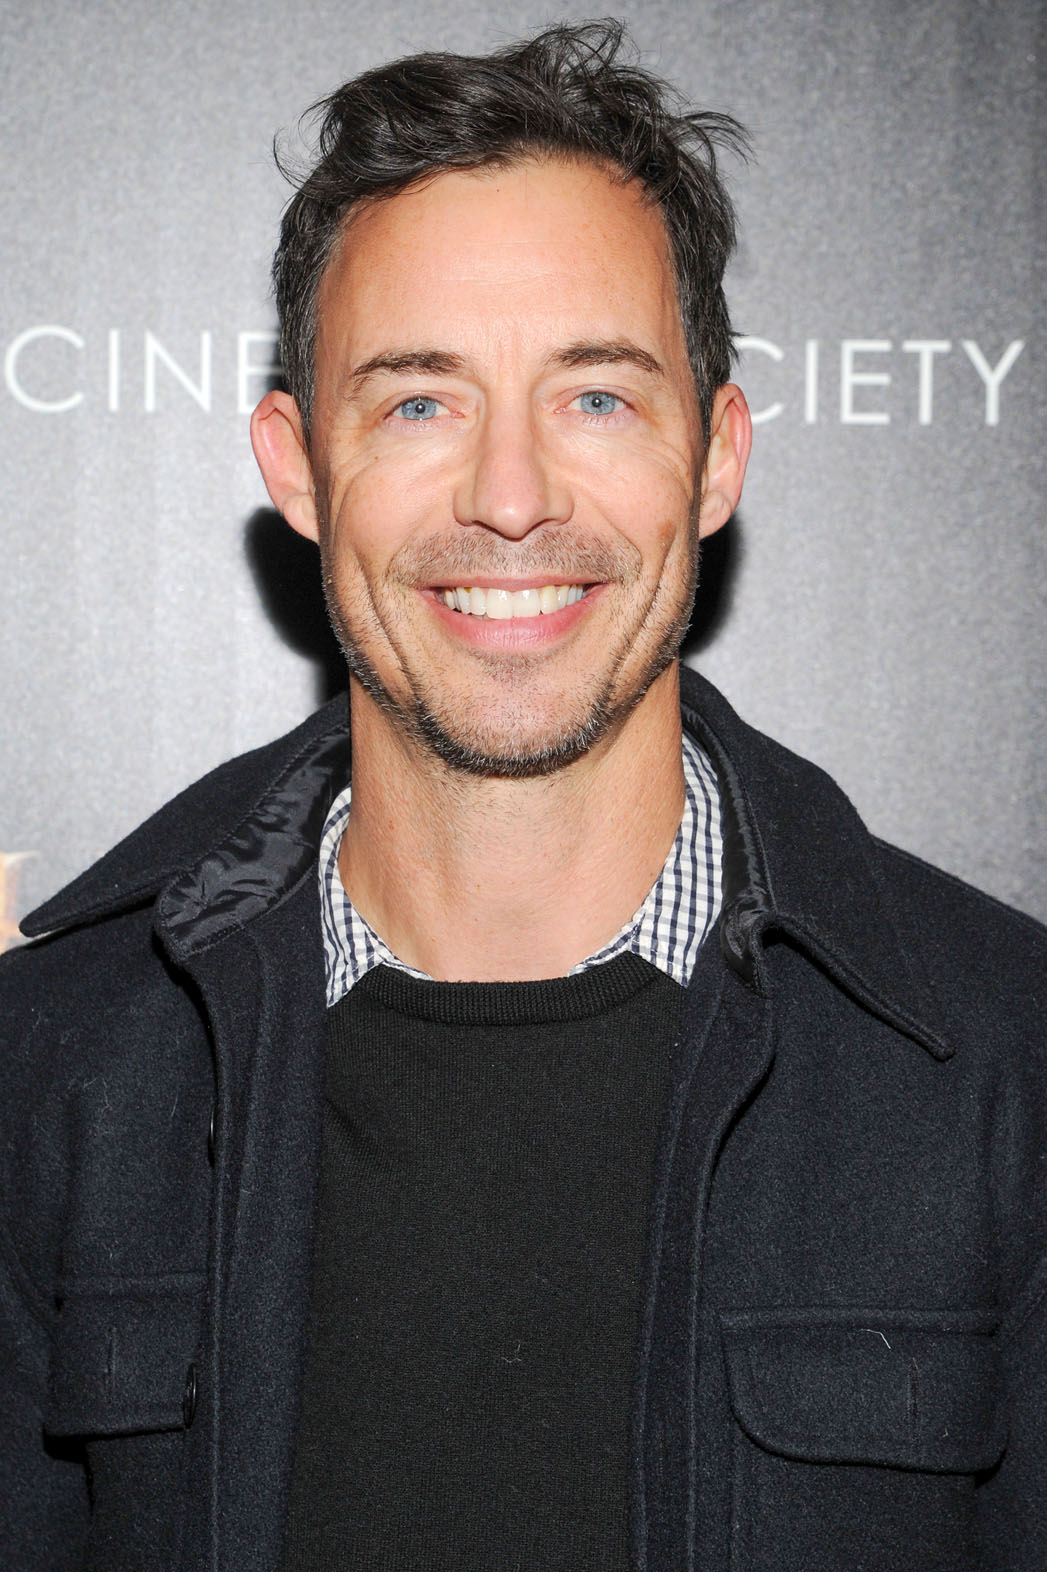 Tom Cavanagh Headshot - P 2014